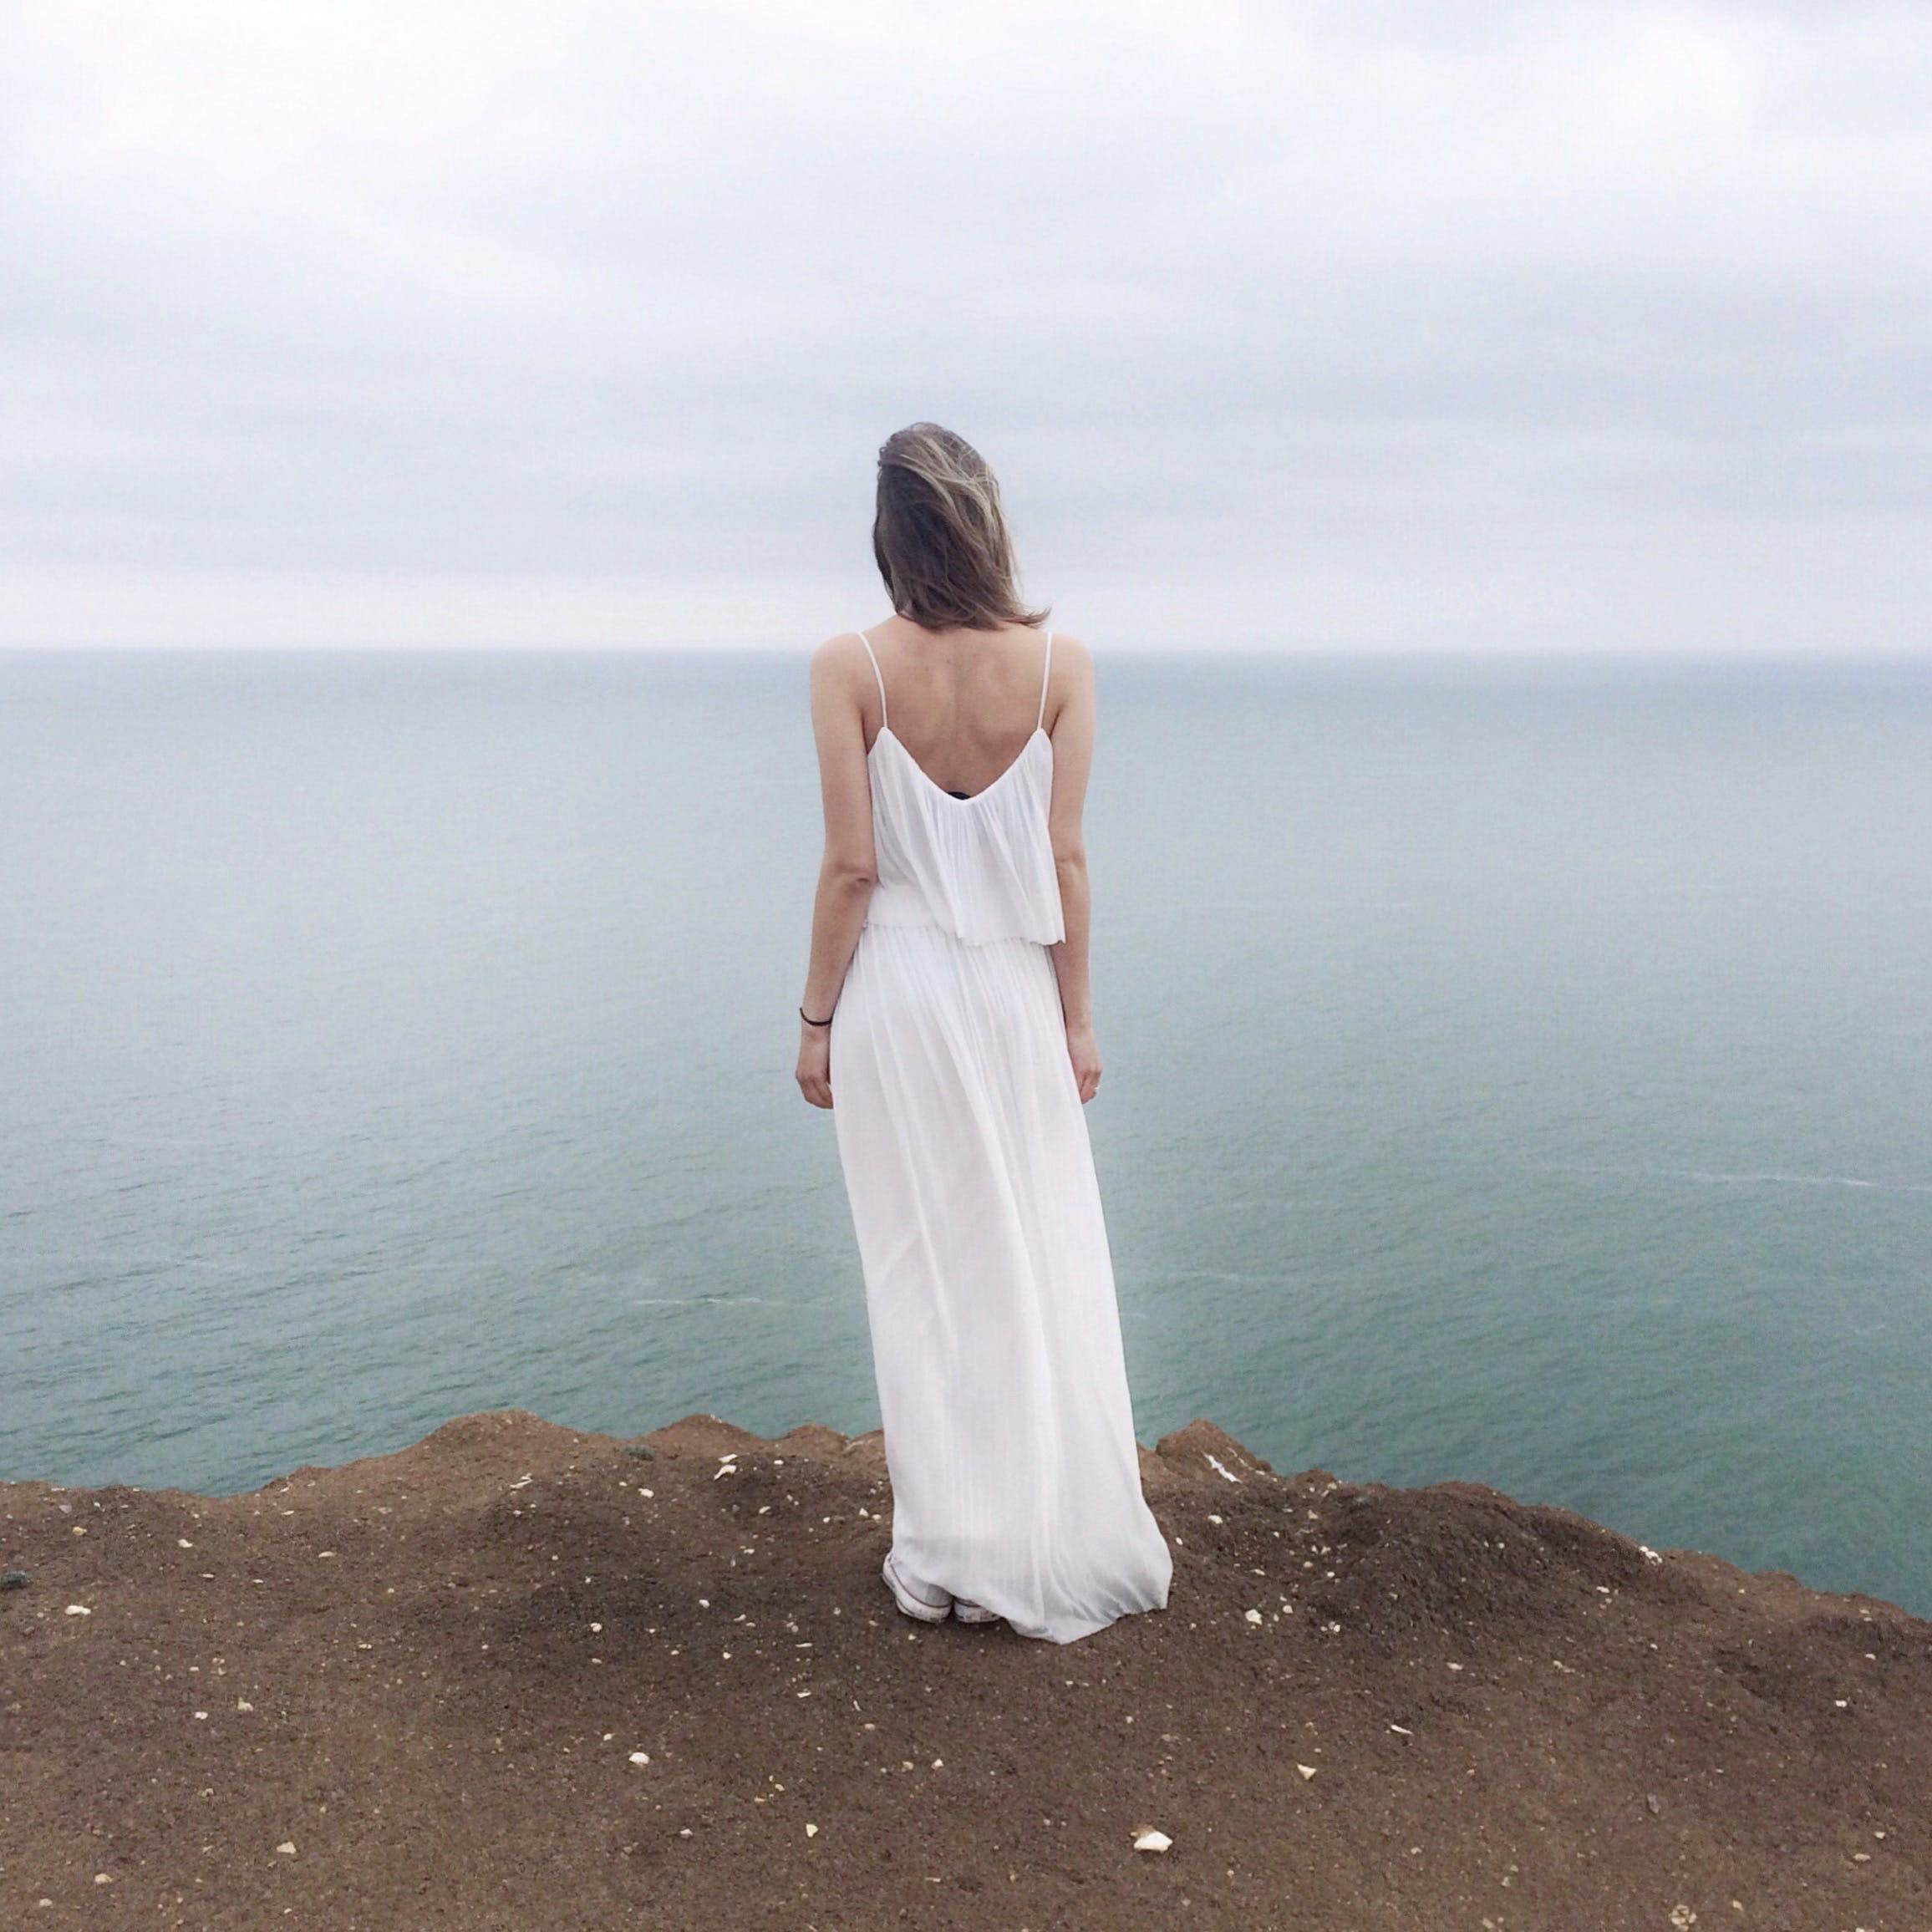 Woman in White Spaghetti Strap Dress Standing on Cliff